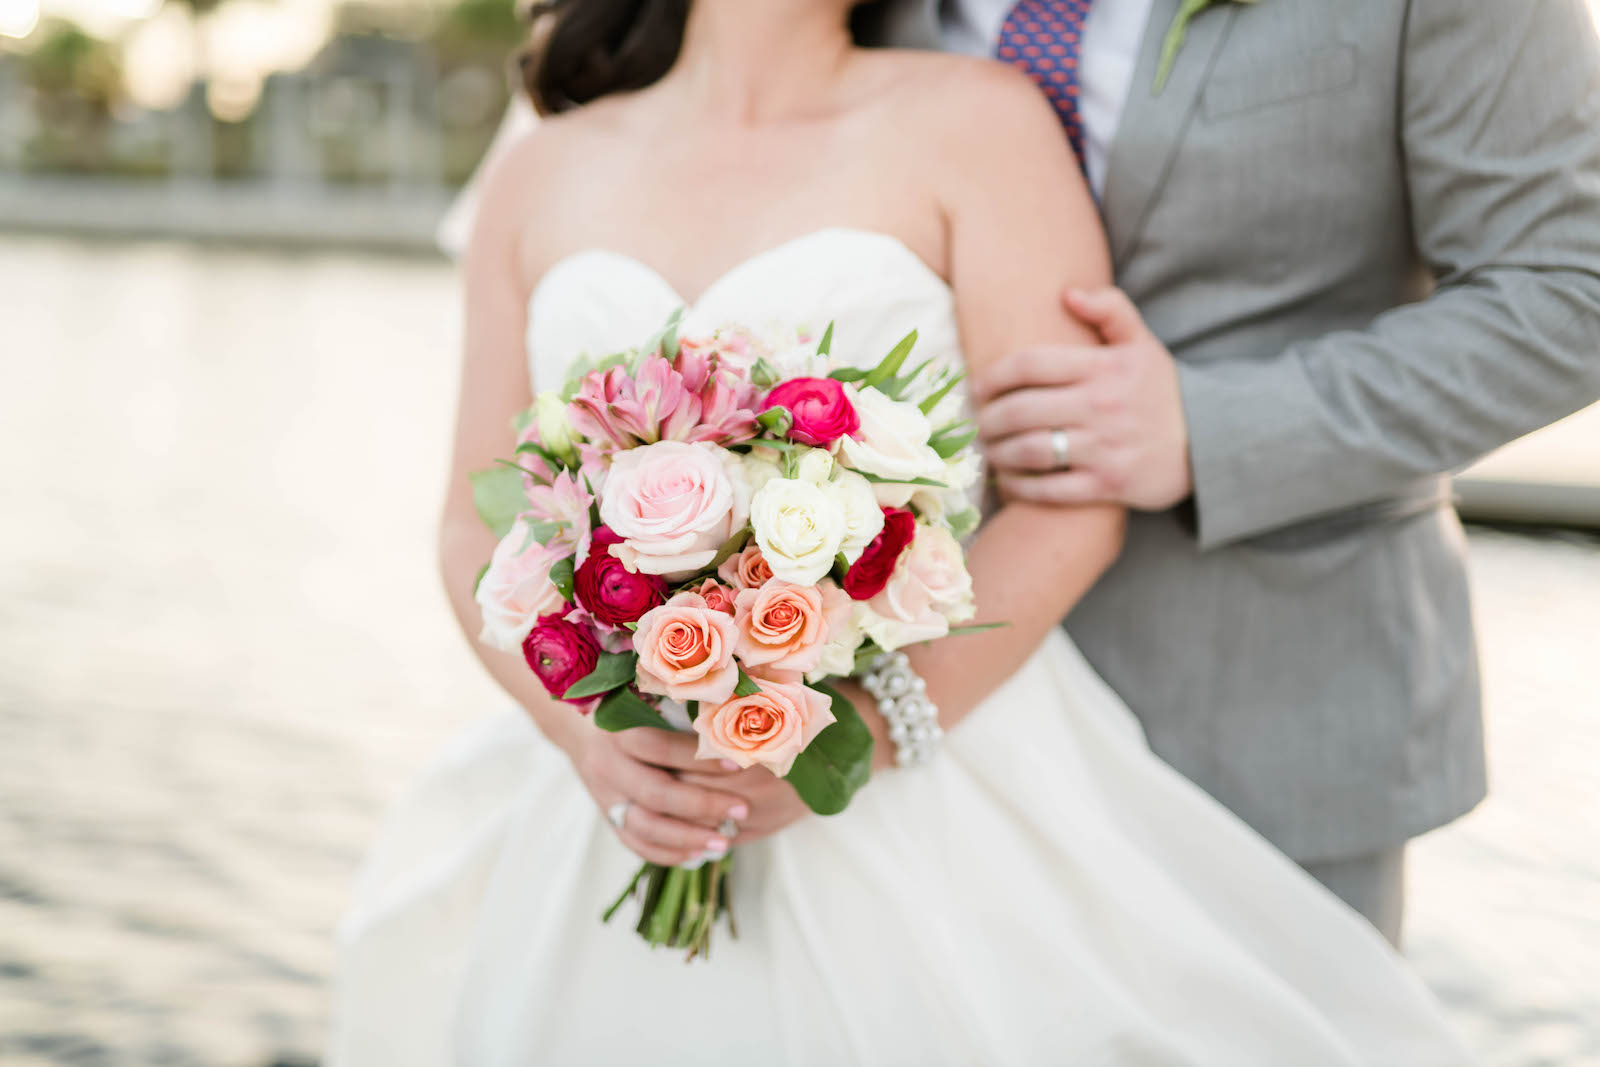 Tampa Bay Bride Holding Blush, Magenta Pink and White Floral Bouquet